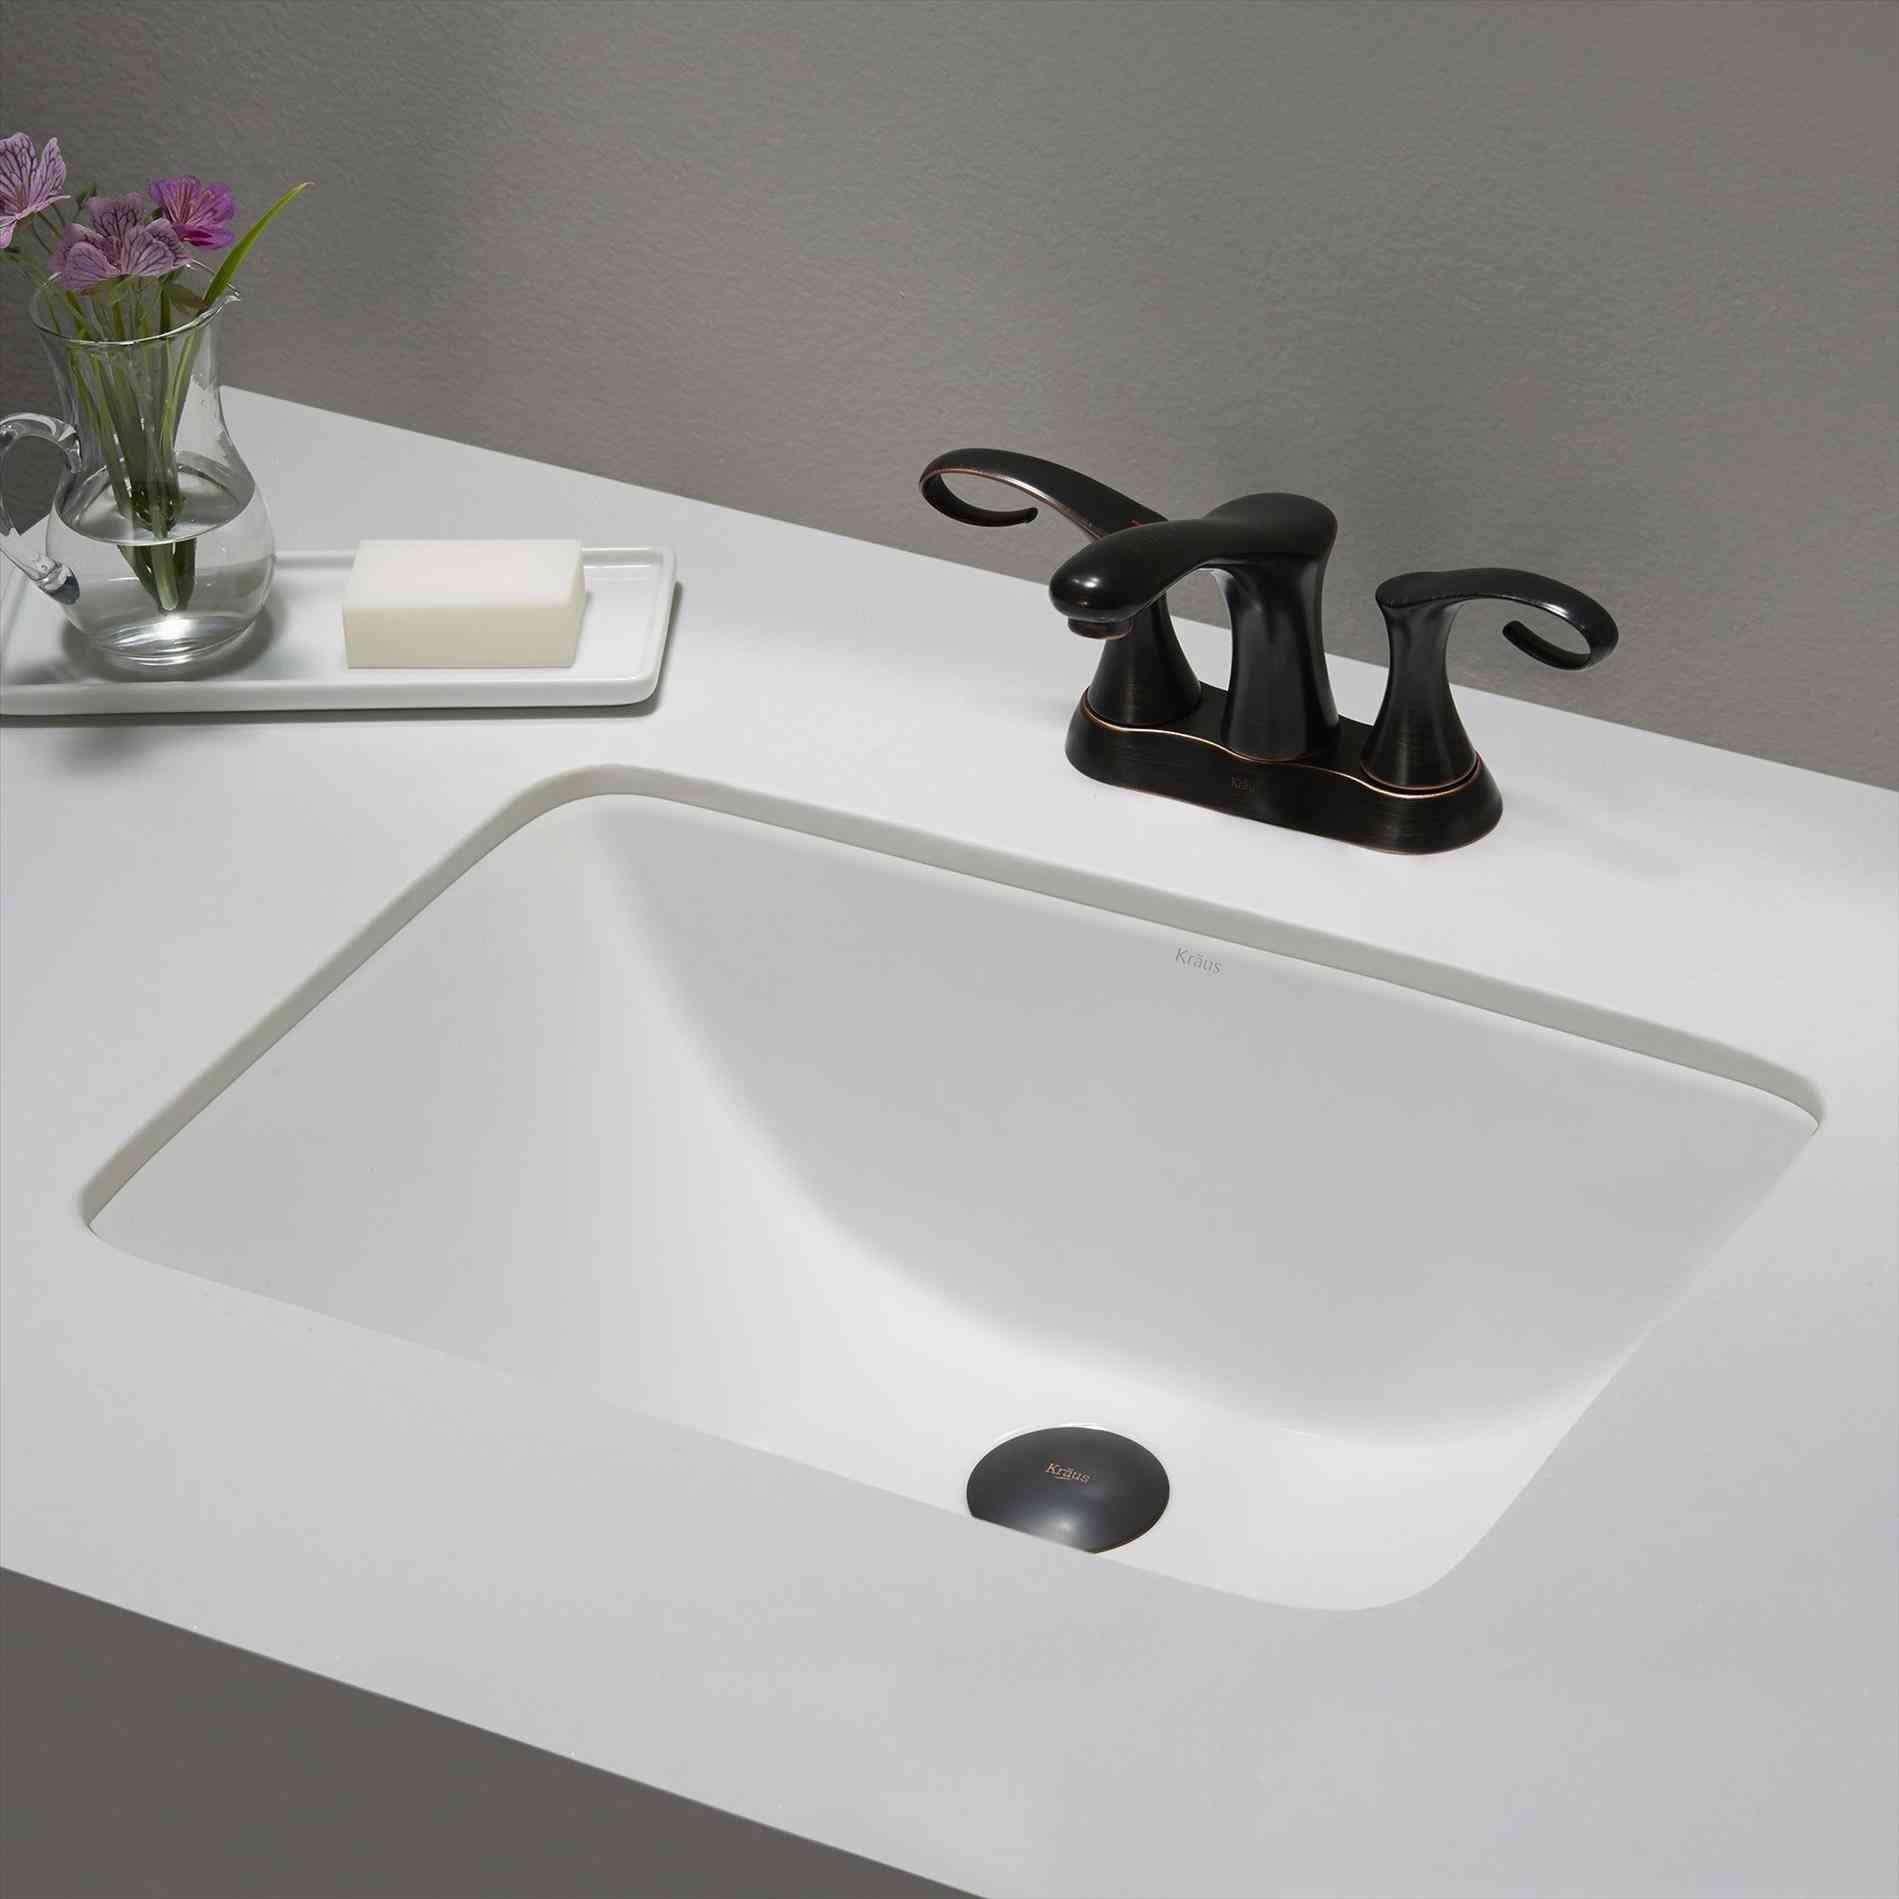 New Post Overmount Bathroom Sinks Visit Bobayule Trending Decors